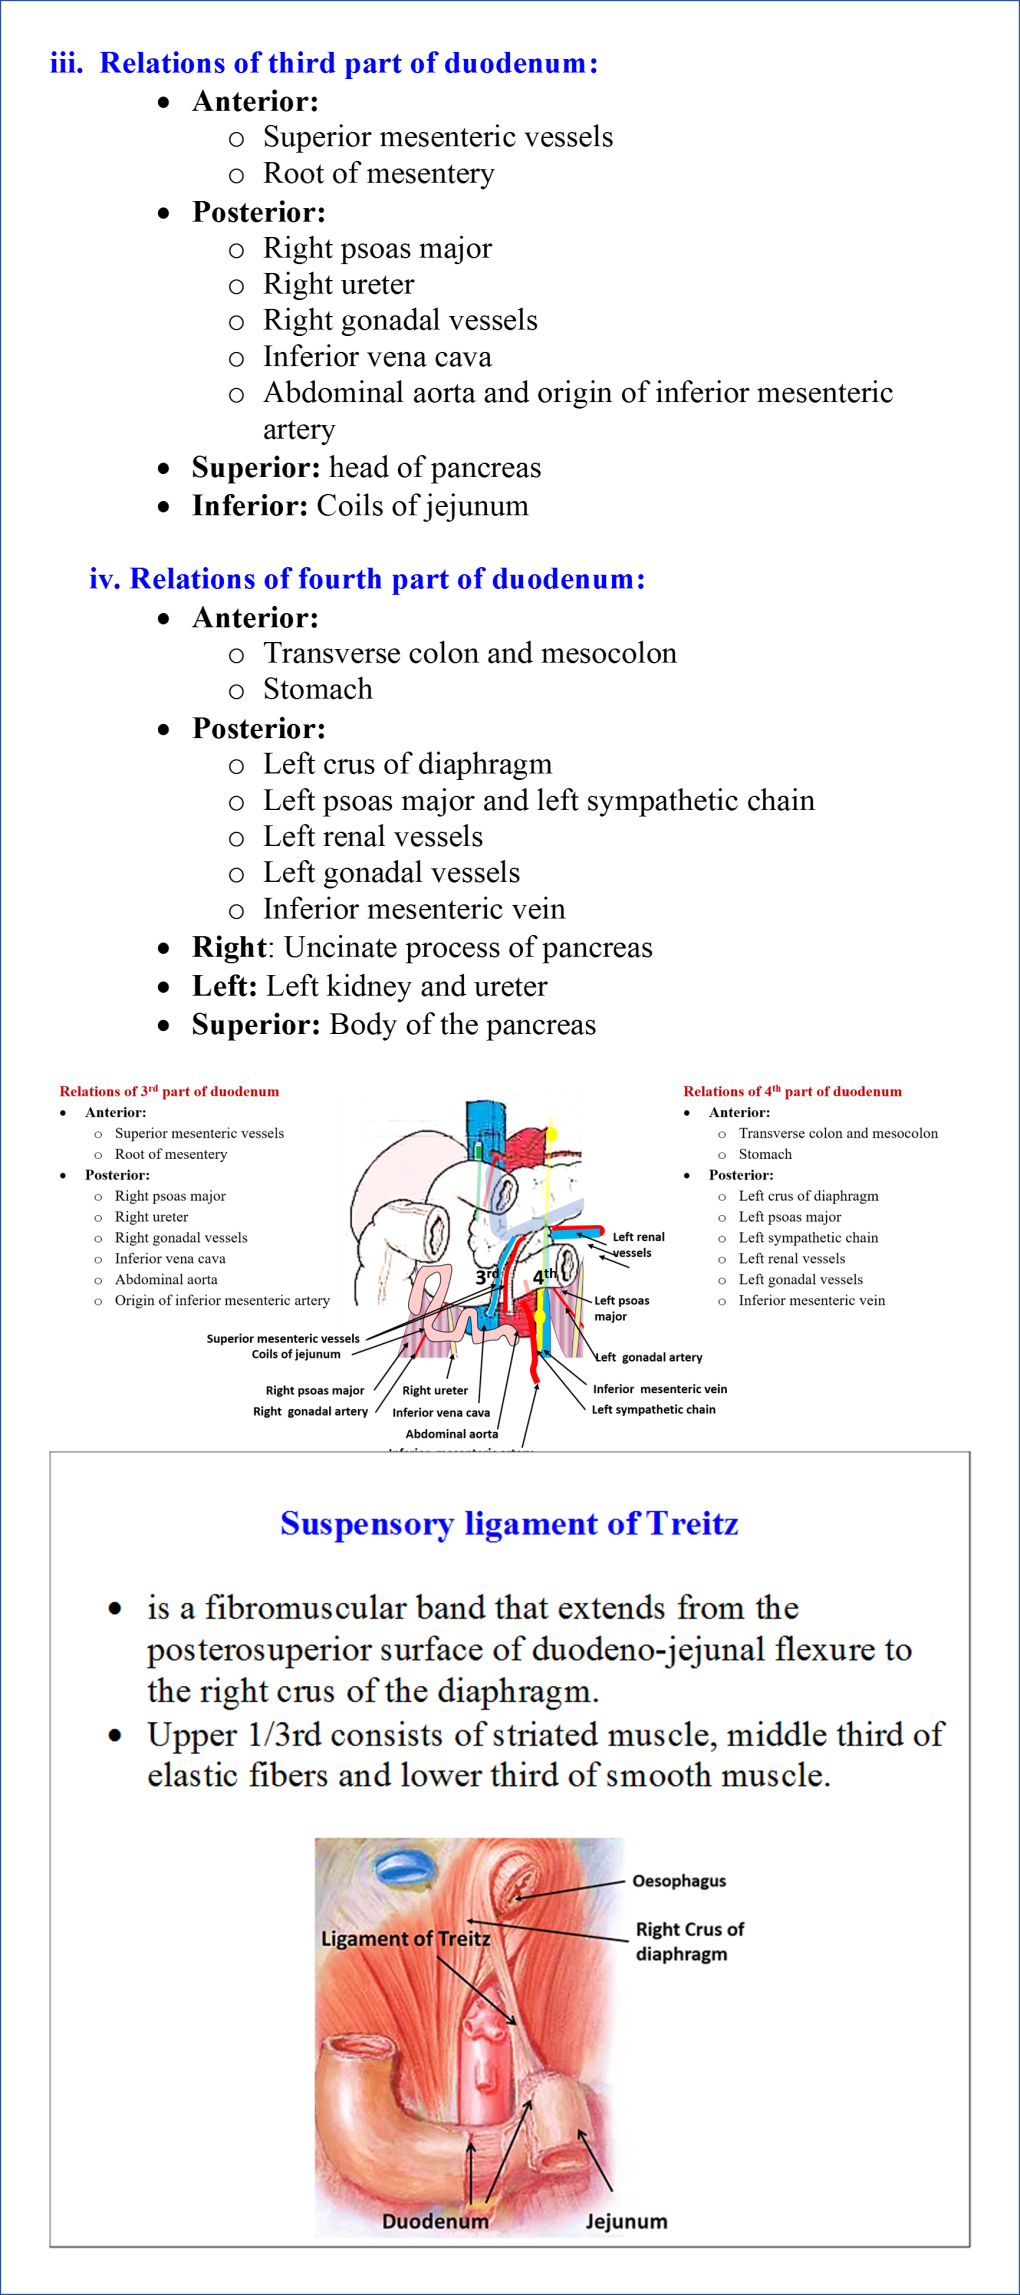 Relations of Third and Fourth Parts of Duodenum